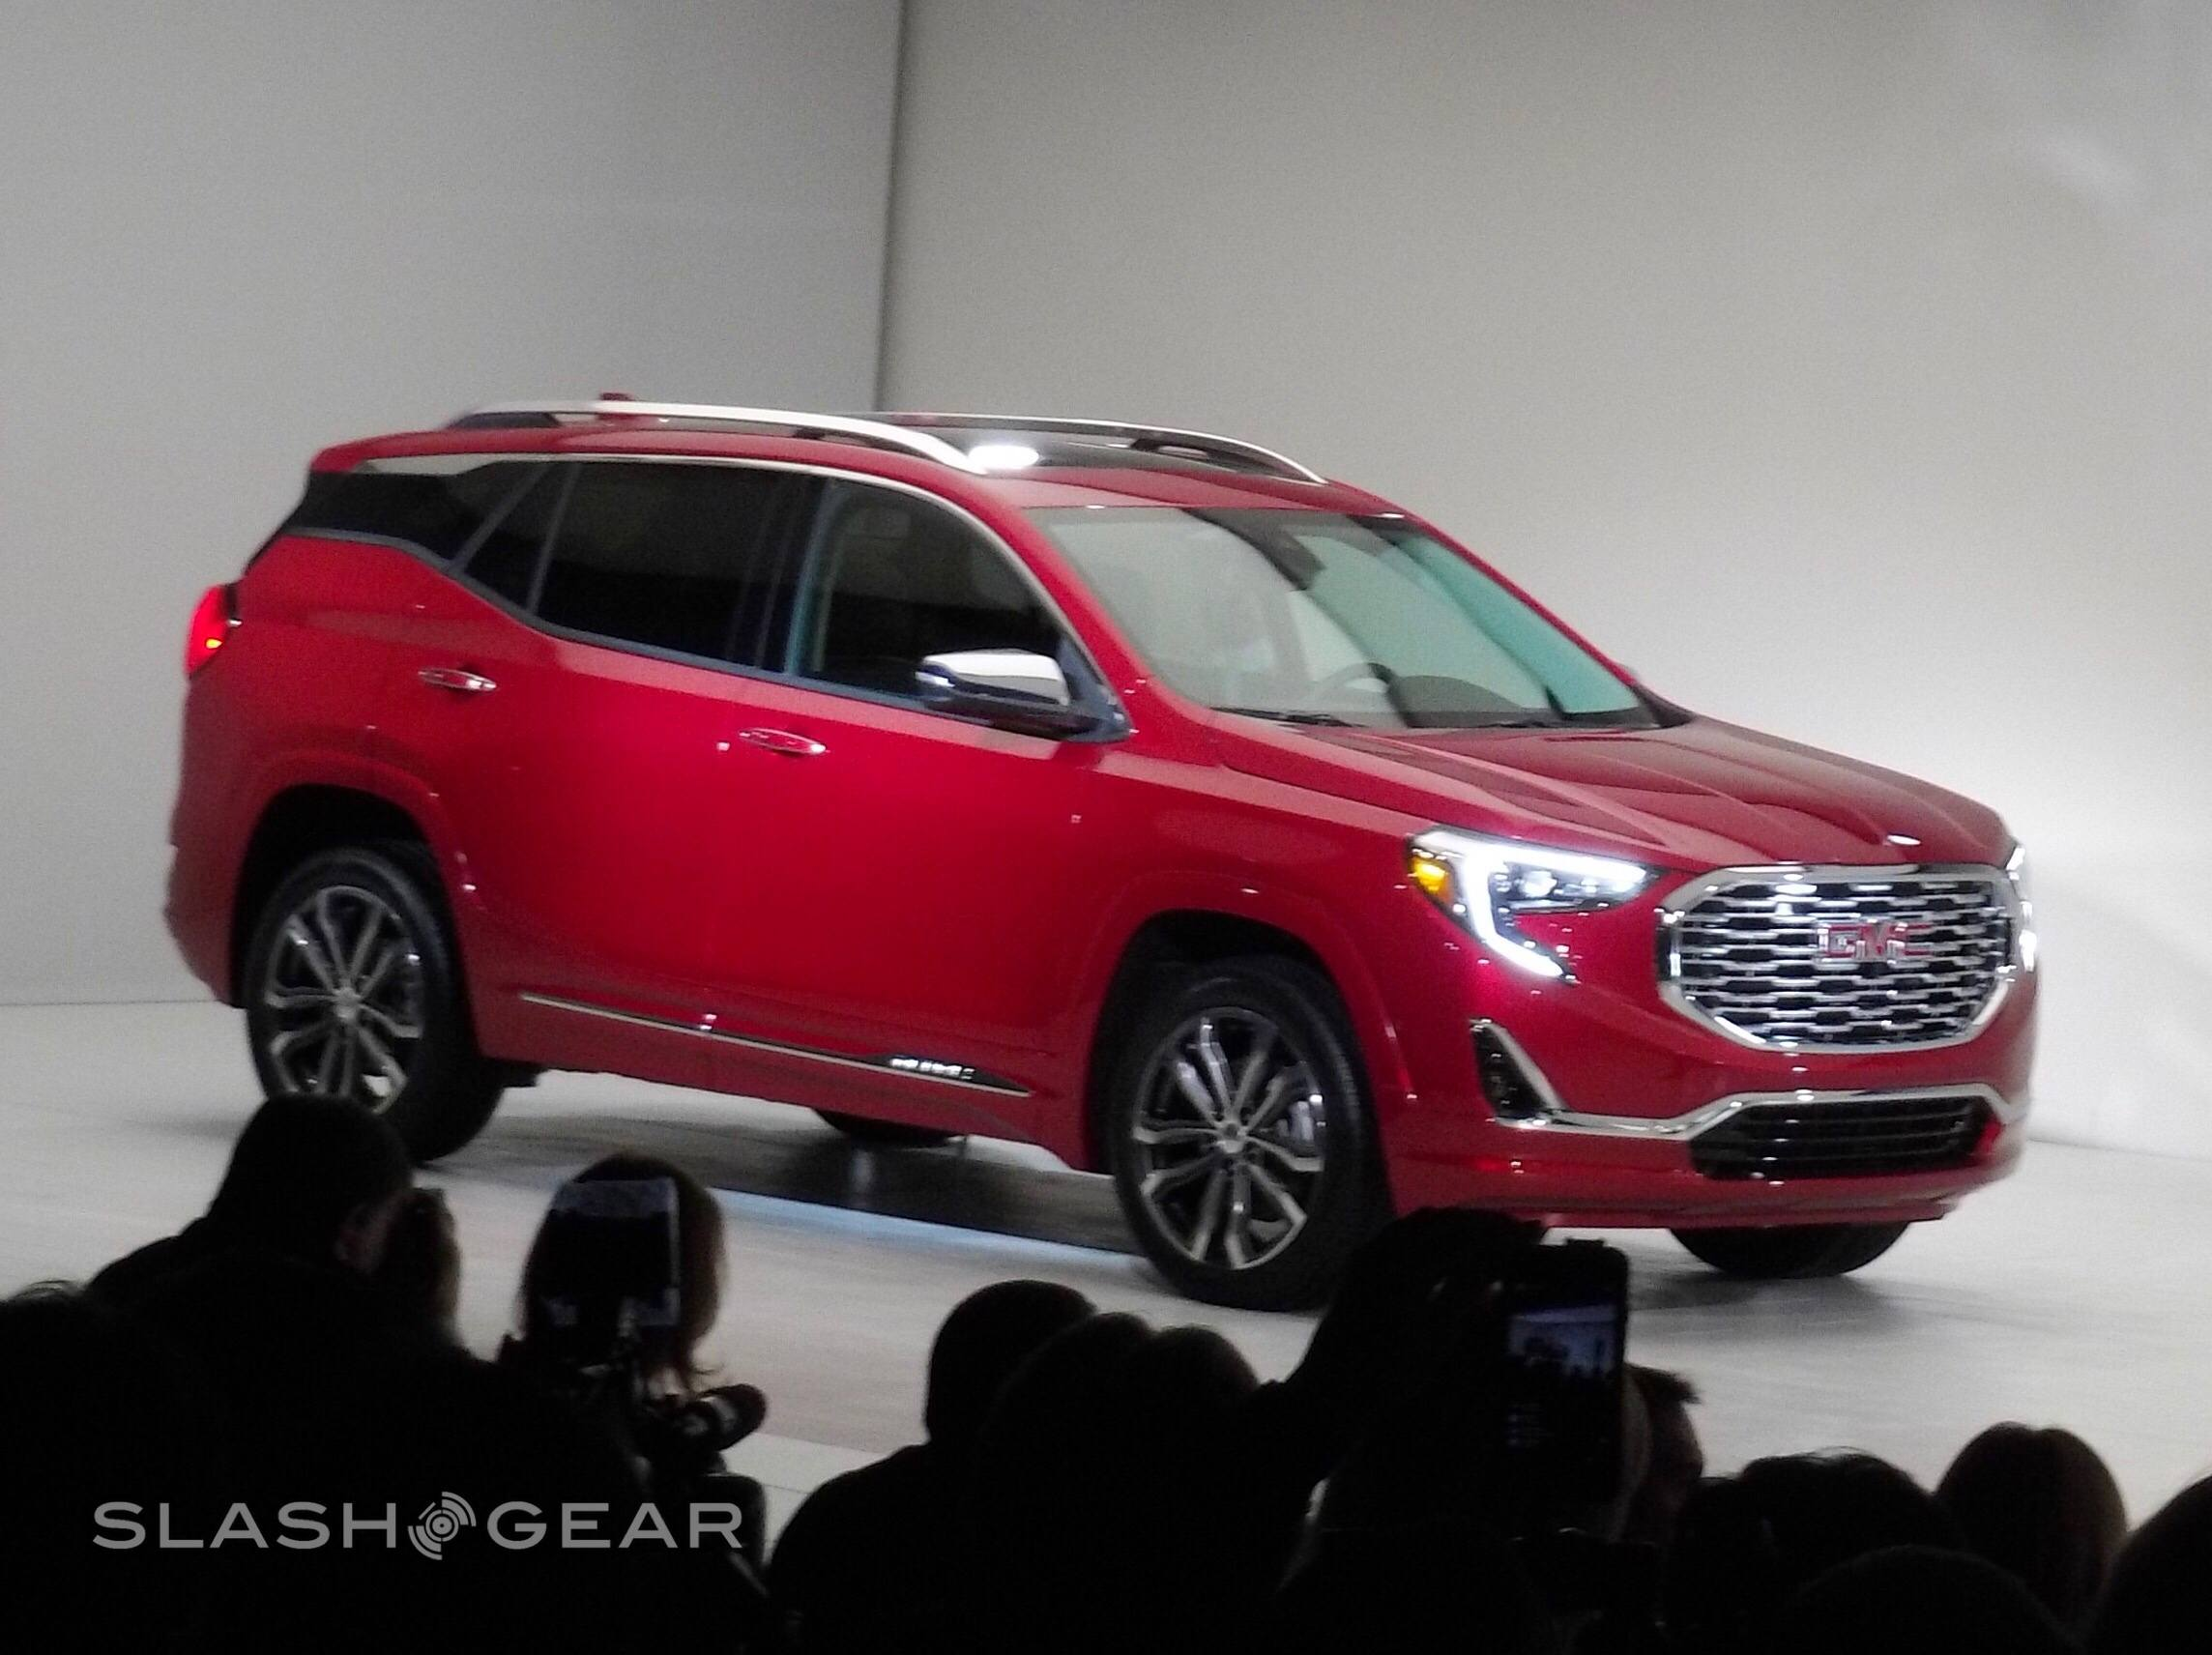 2018 Gmc Terrain Compact Suv Moves To All Turbocharged Line Up At Detroit Auto Show